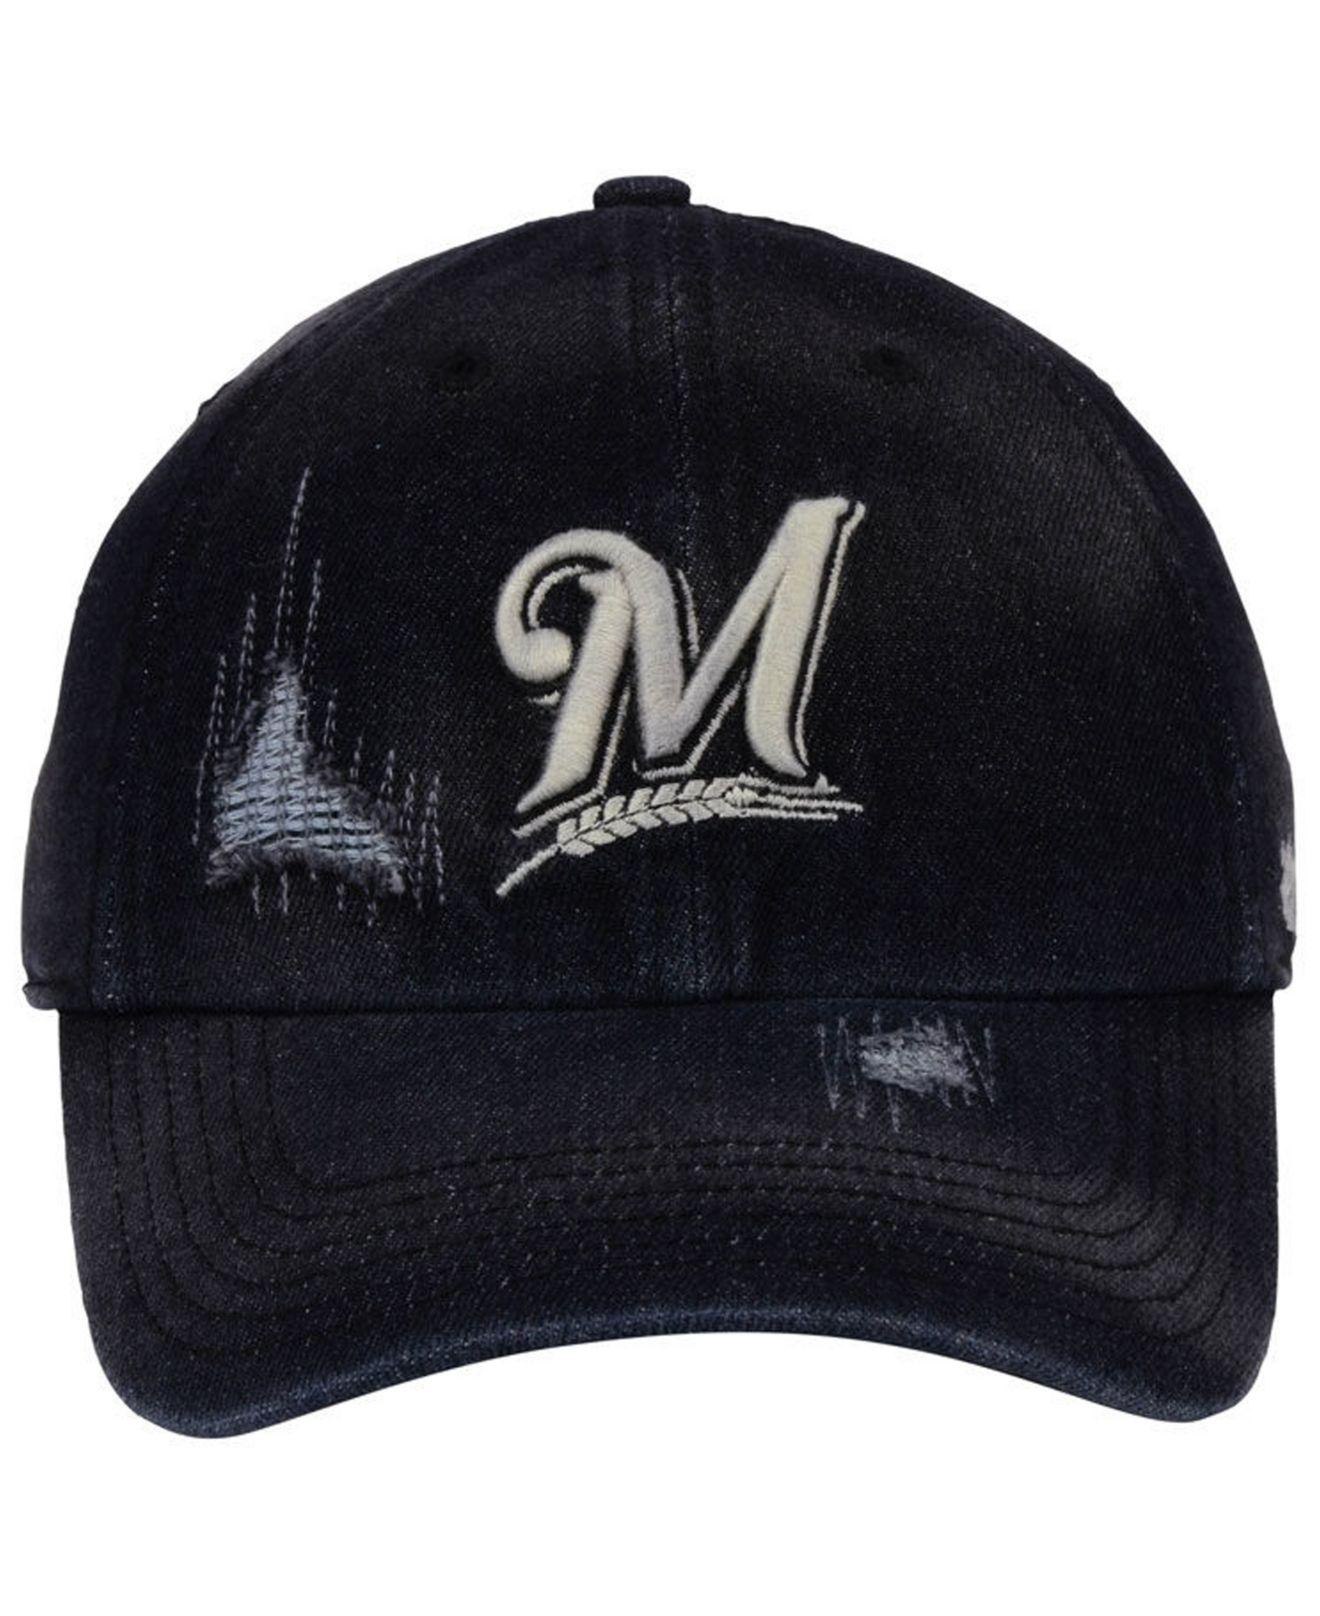 Lyst - 47 Brand Milwaukee Brewers Dark Horse Clean Up Cap in Black for Men 3ac966060aaa